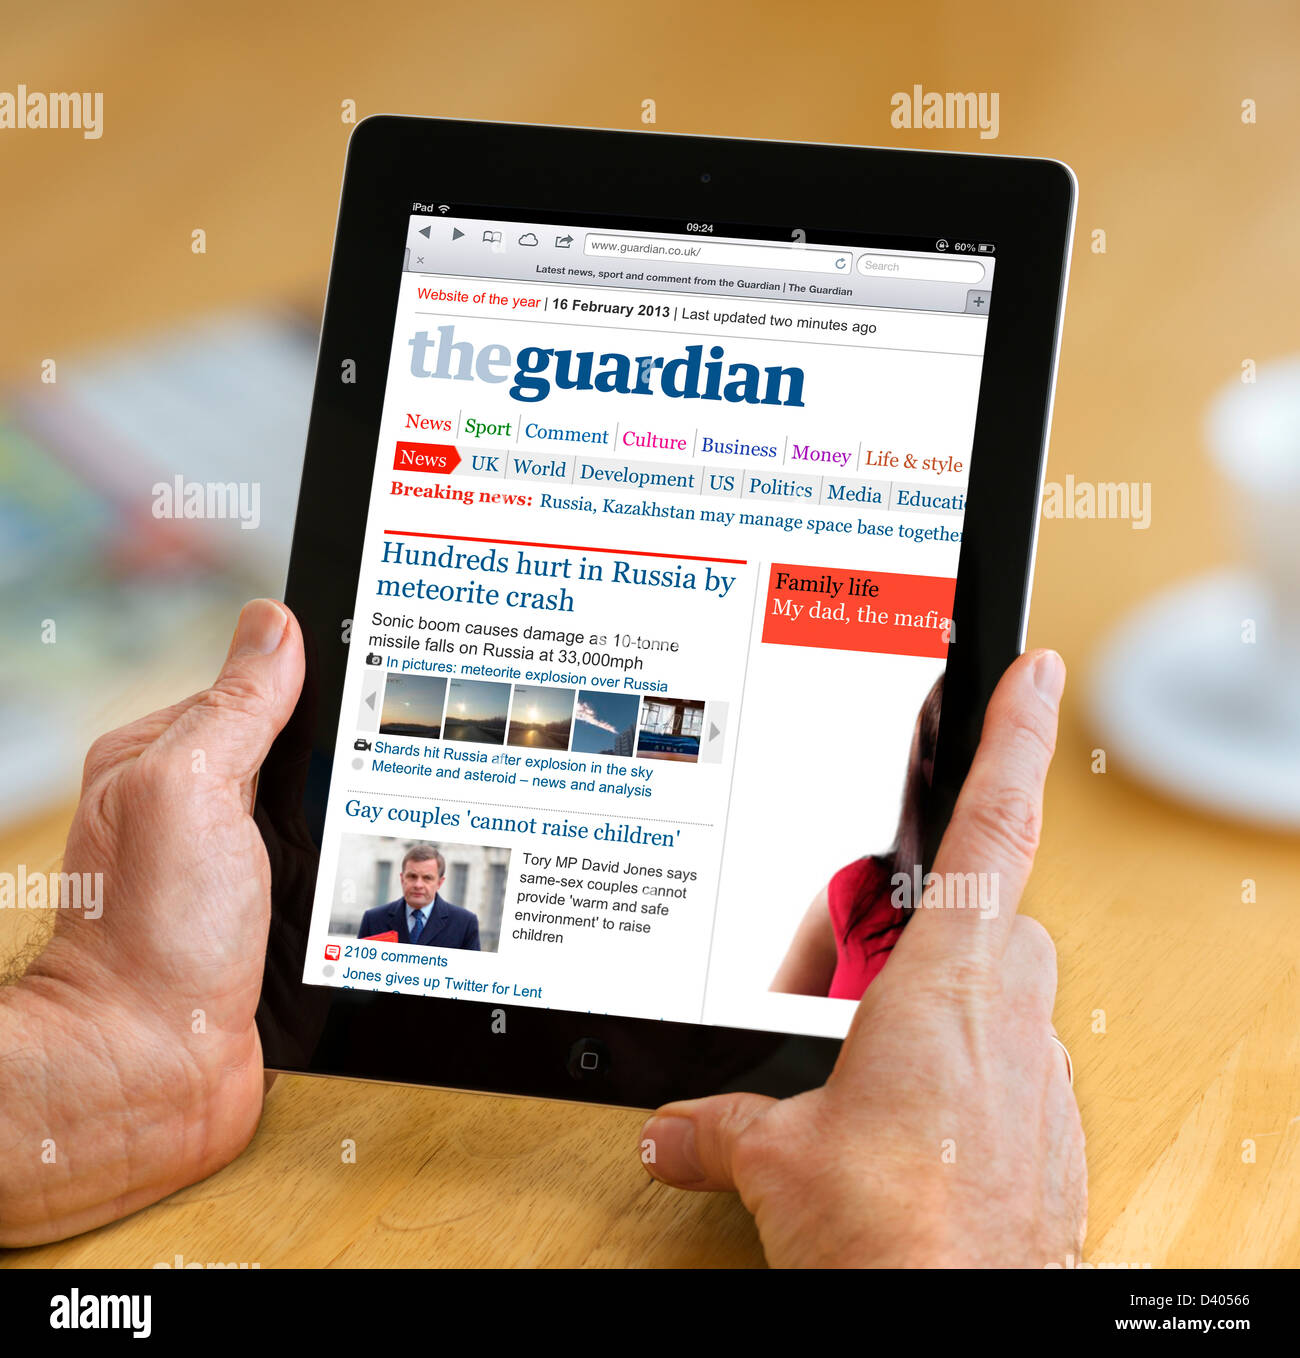 Reading the internet edition of the Guardian online newspaper on a 4th Generation iPad, UK - Stock Image